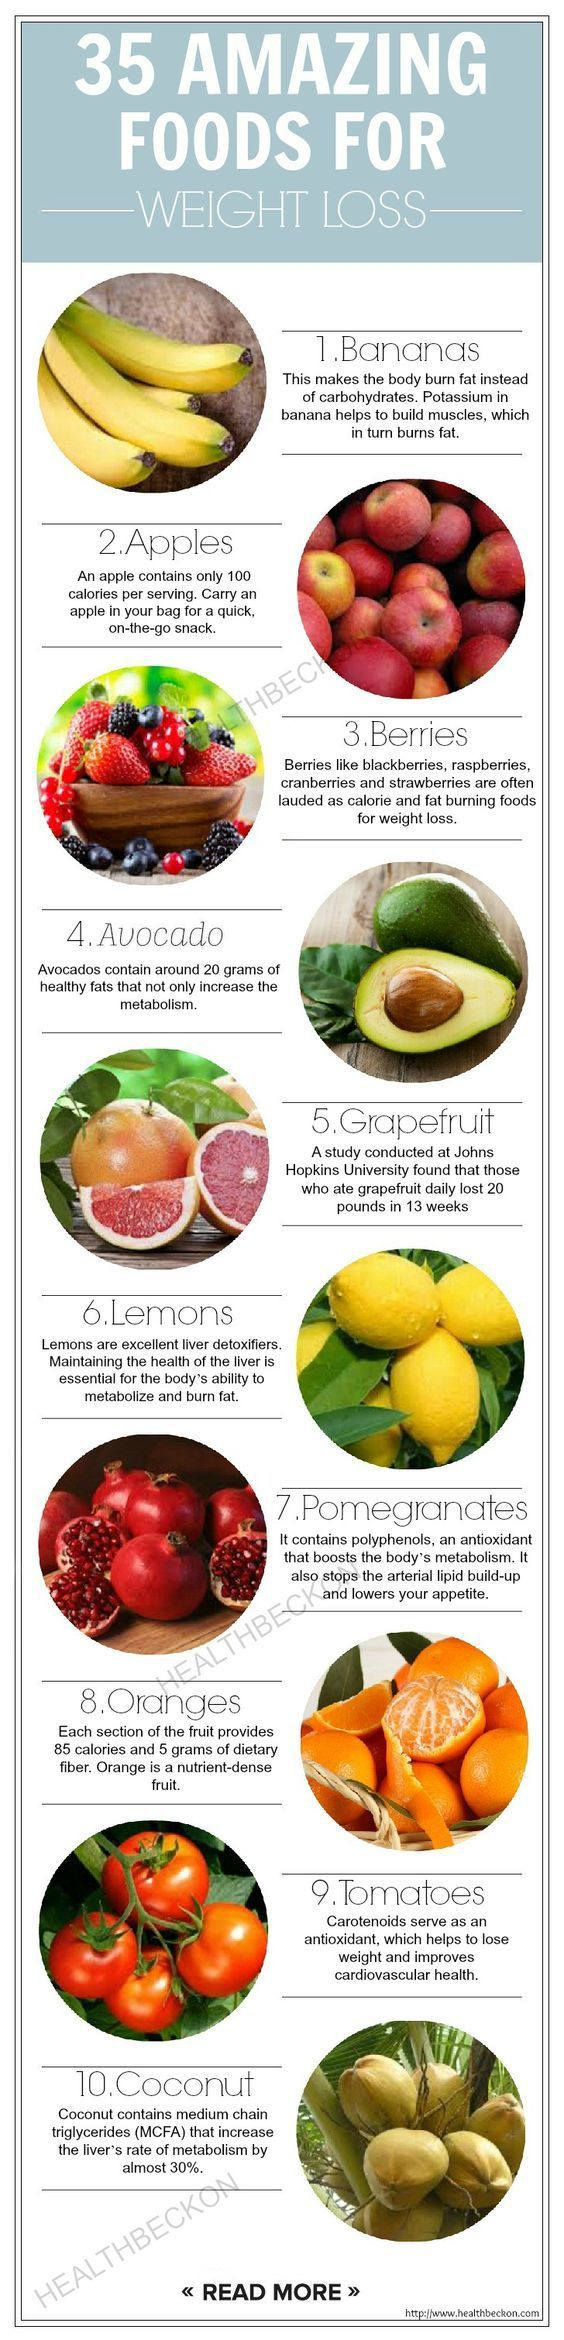 Fruits that help with weight management.